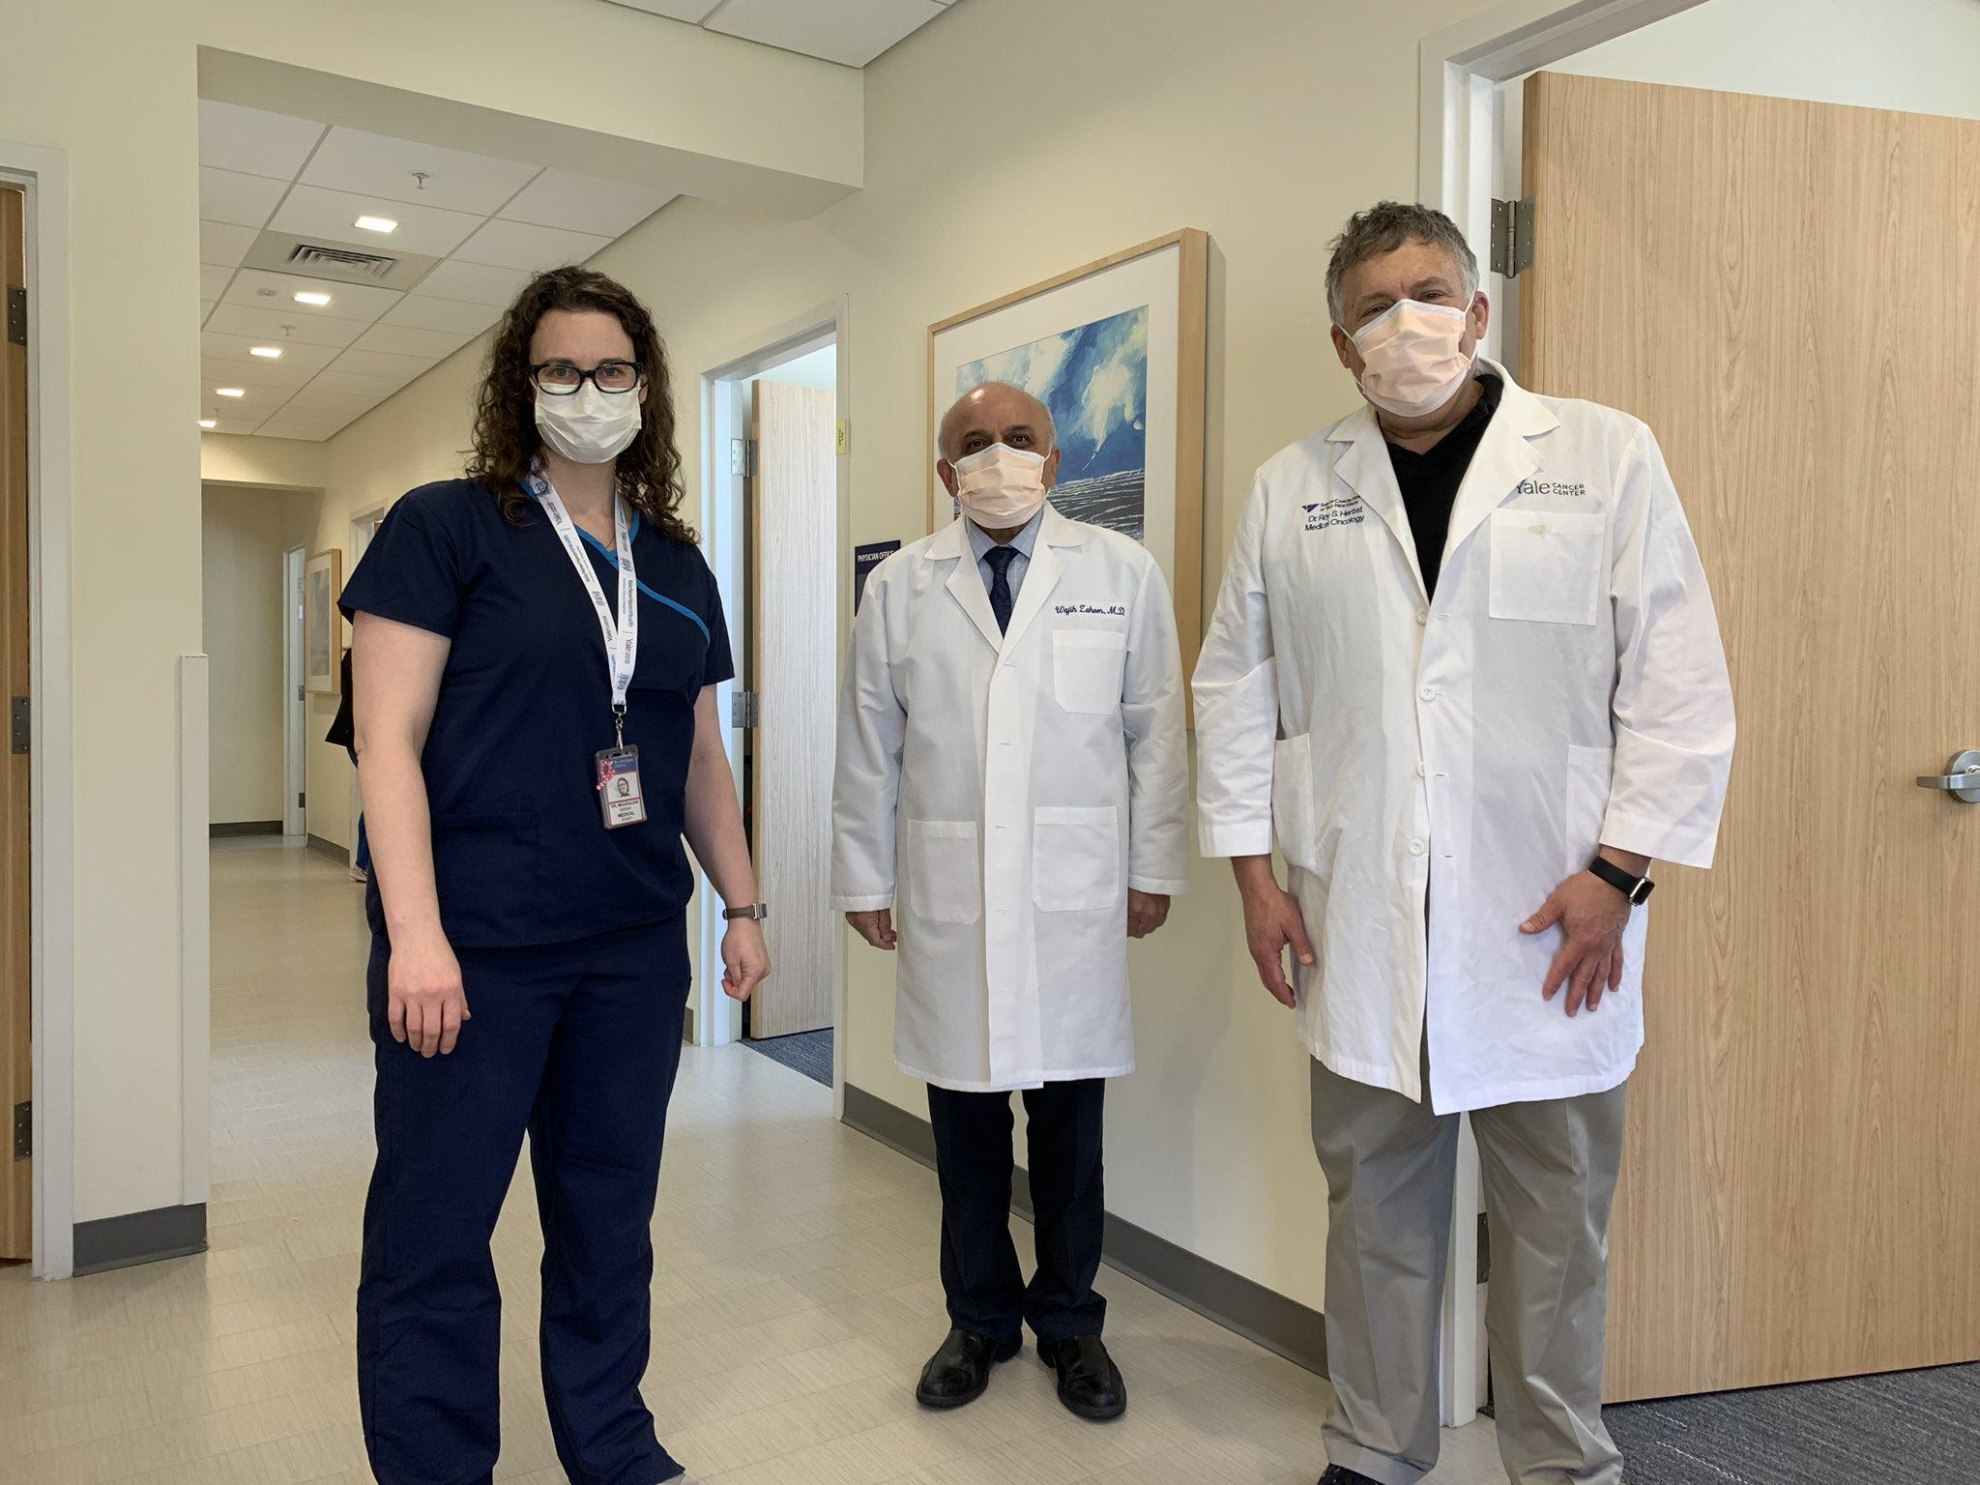 group of three doctors wearing masks